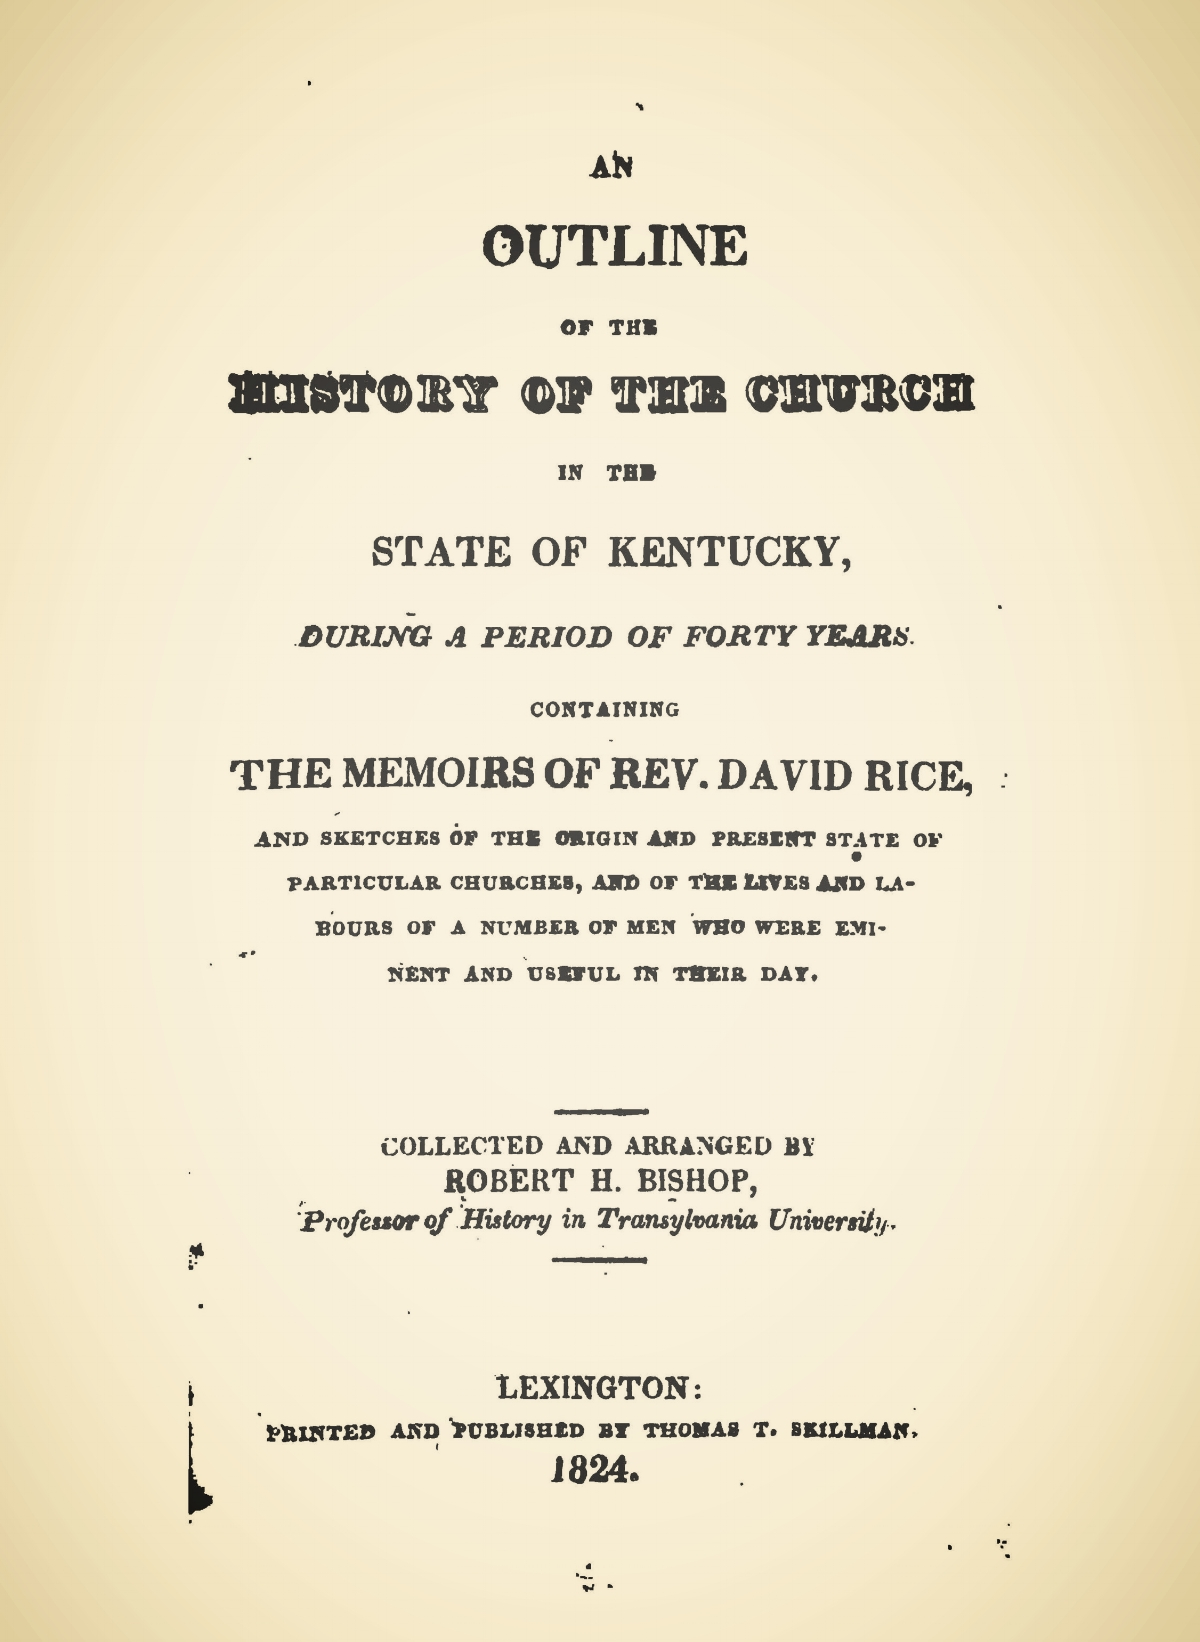 Bishop, Robert Hamilton, An Outline of the History of the Church in the State of Kentucky Title Page.jpg